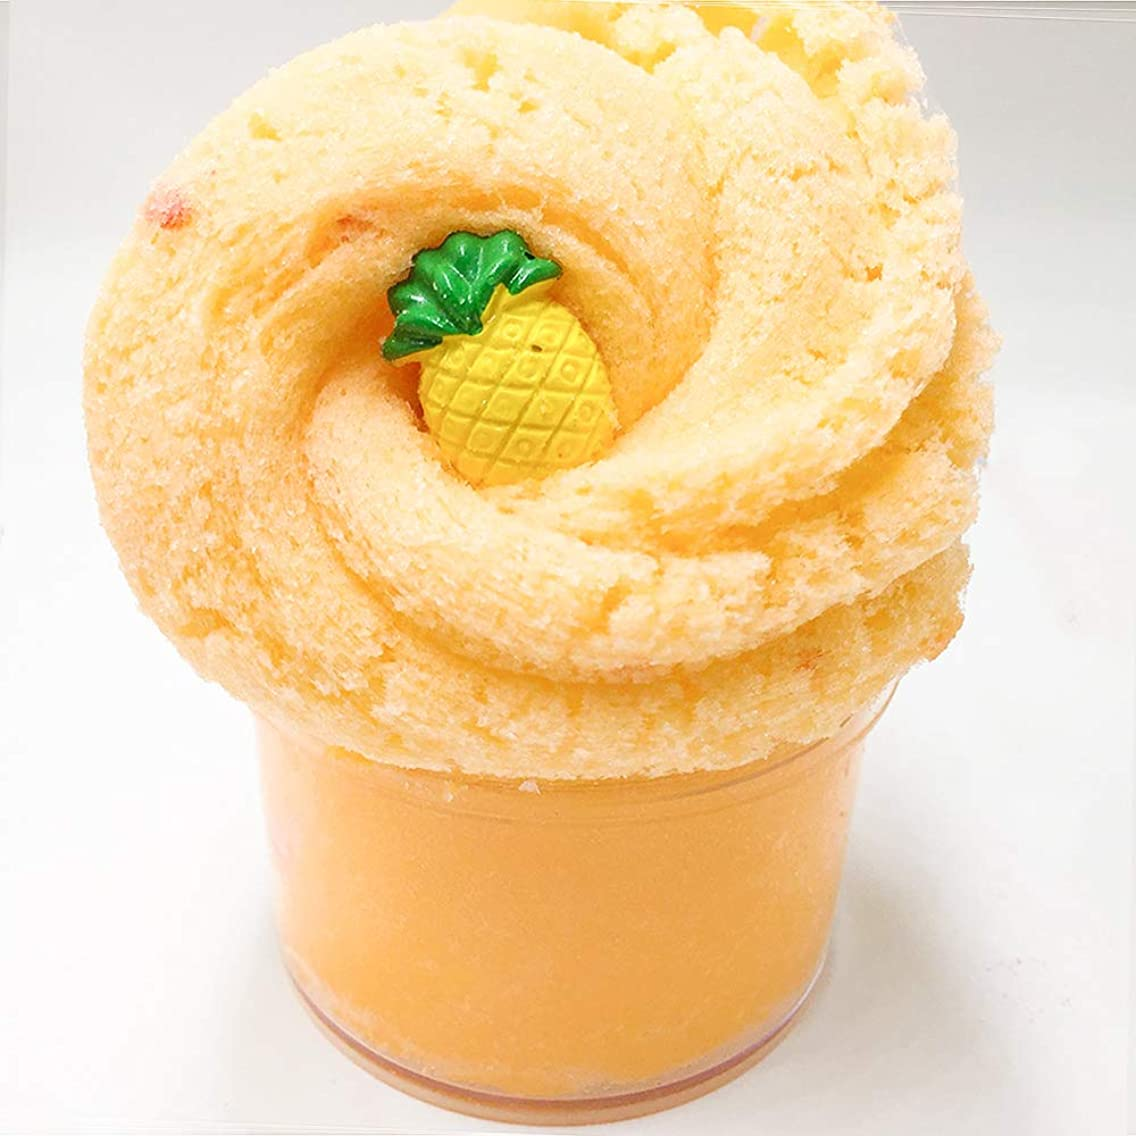 Pineapple Cloud Slime Fluffy Foam Slime Scented Slime Clay Sludge Beading Supplies Toys for Adults and Kids 8oz